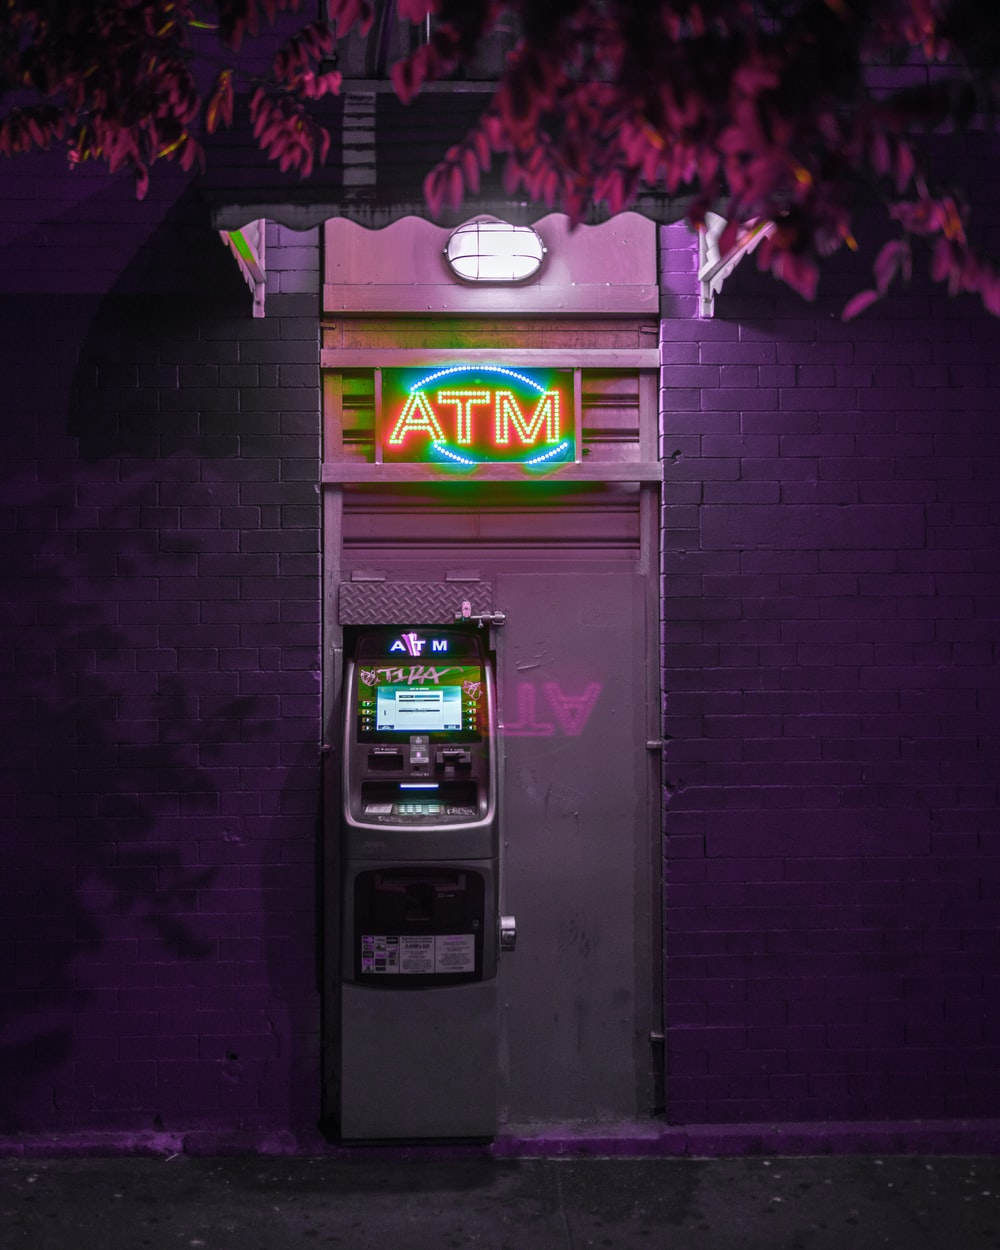 Atm Pictures | Download Free Images on Unsplash